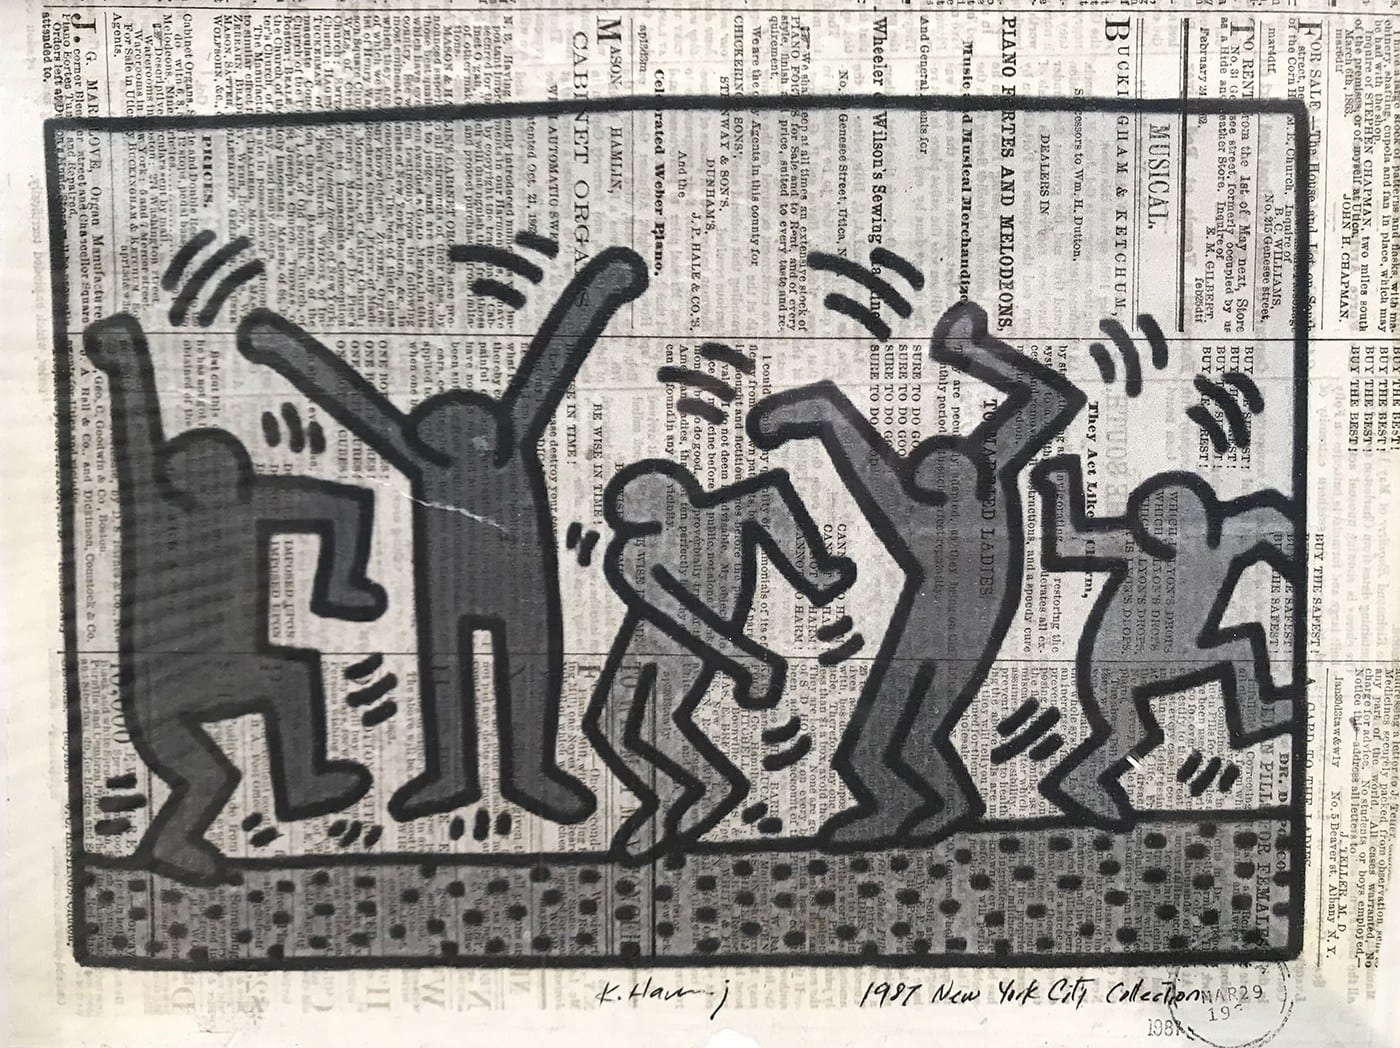 Keith HARING – New York City collection – 1981